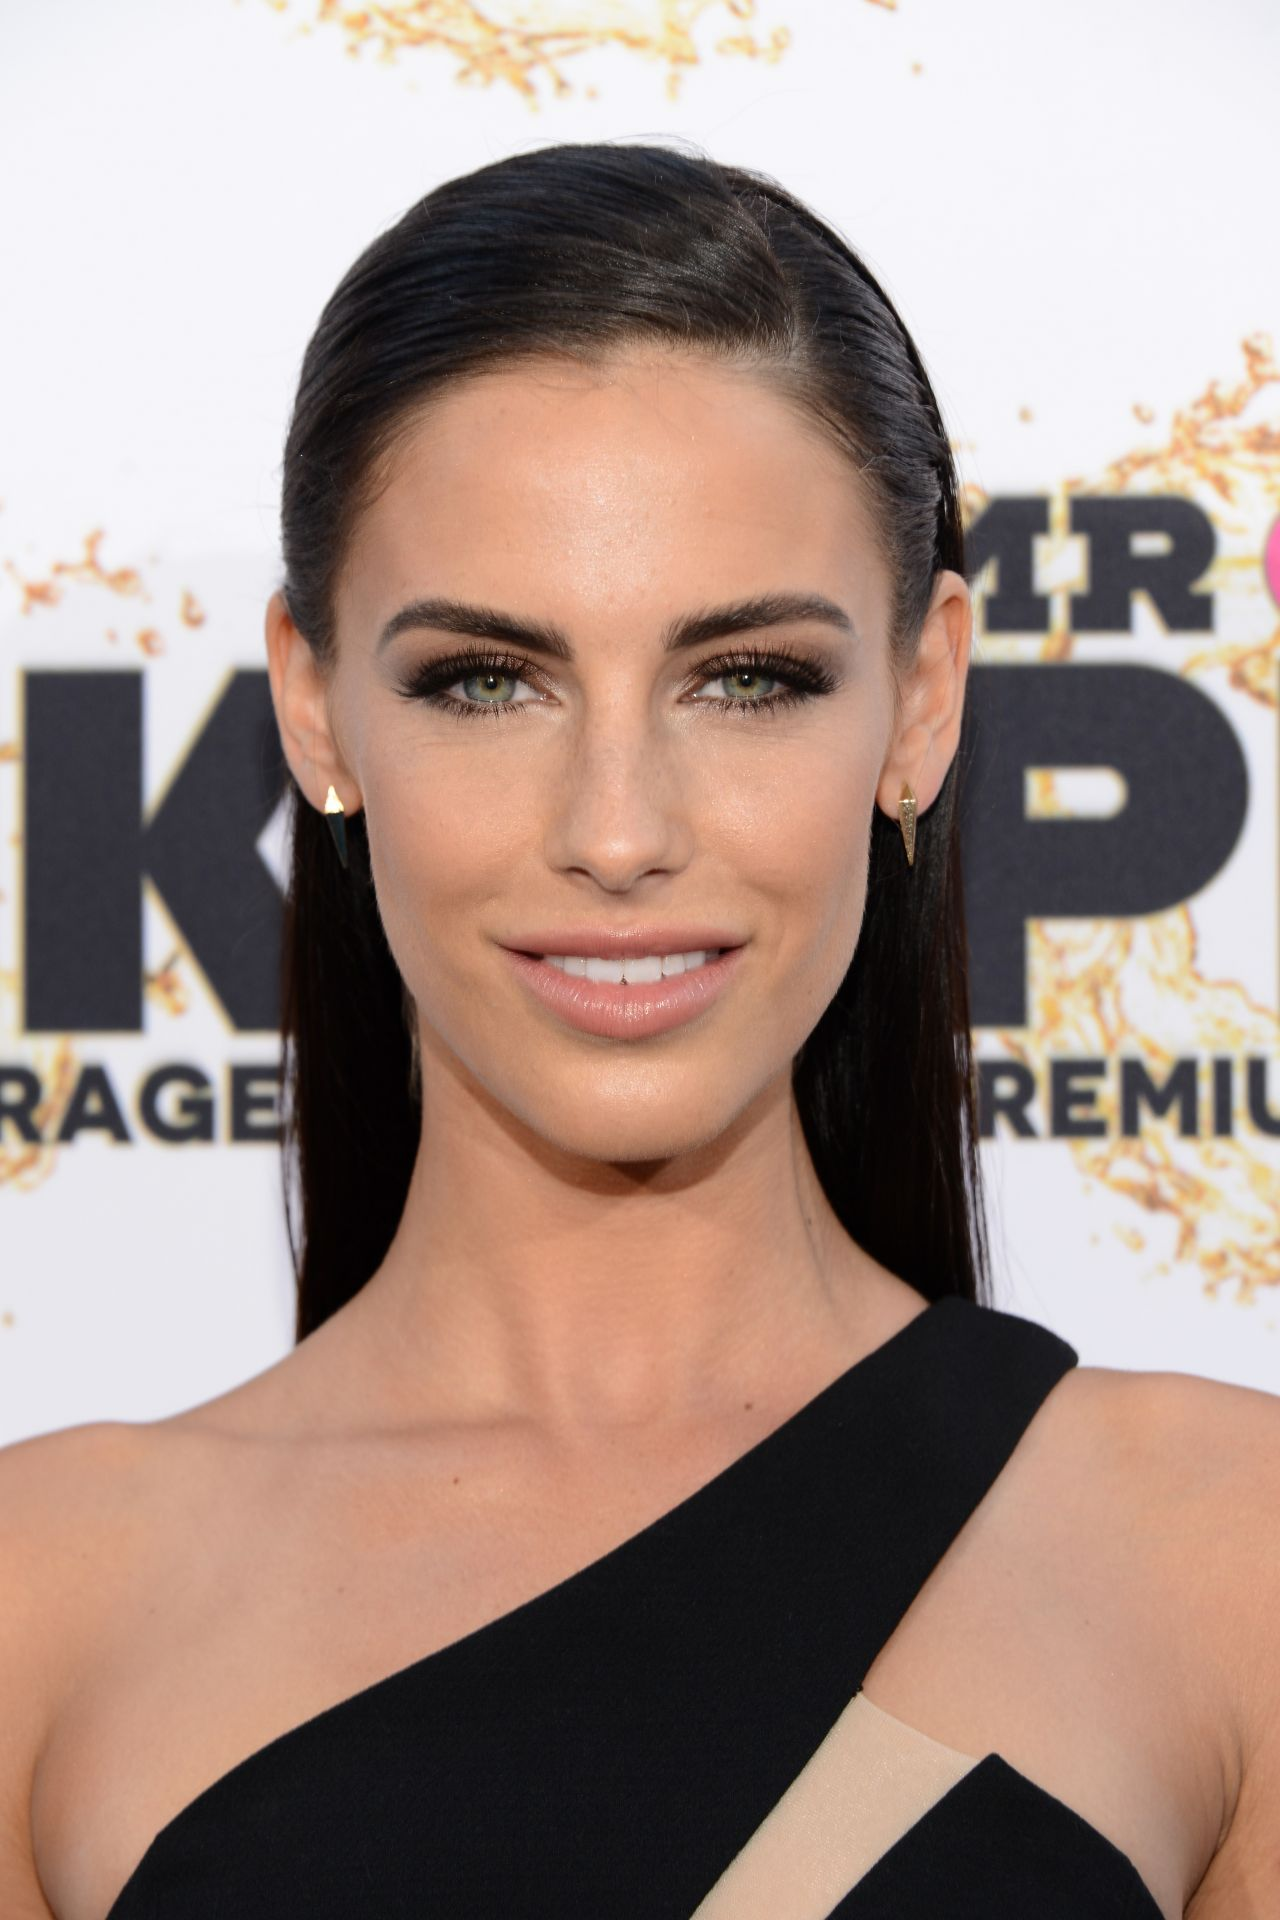 Jessica Lowndes' Debut Single to Drop September 9, 2014